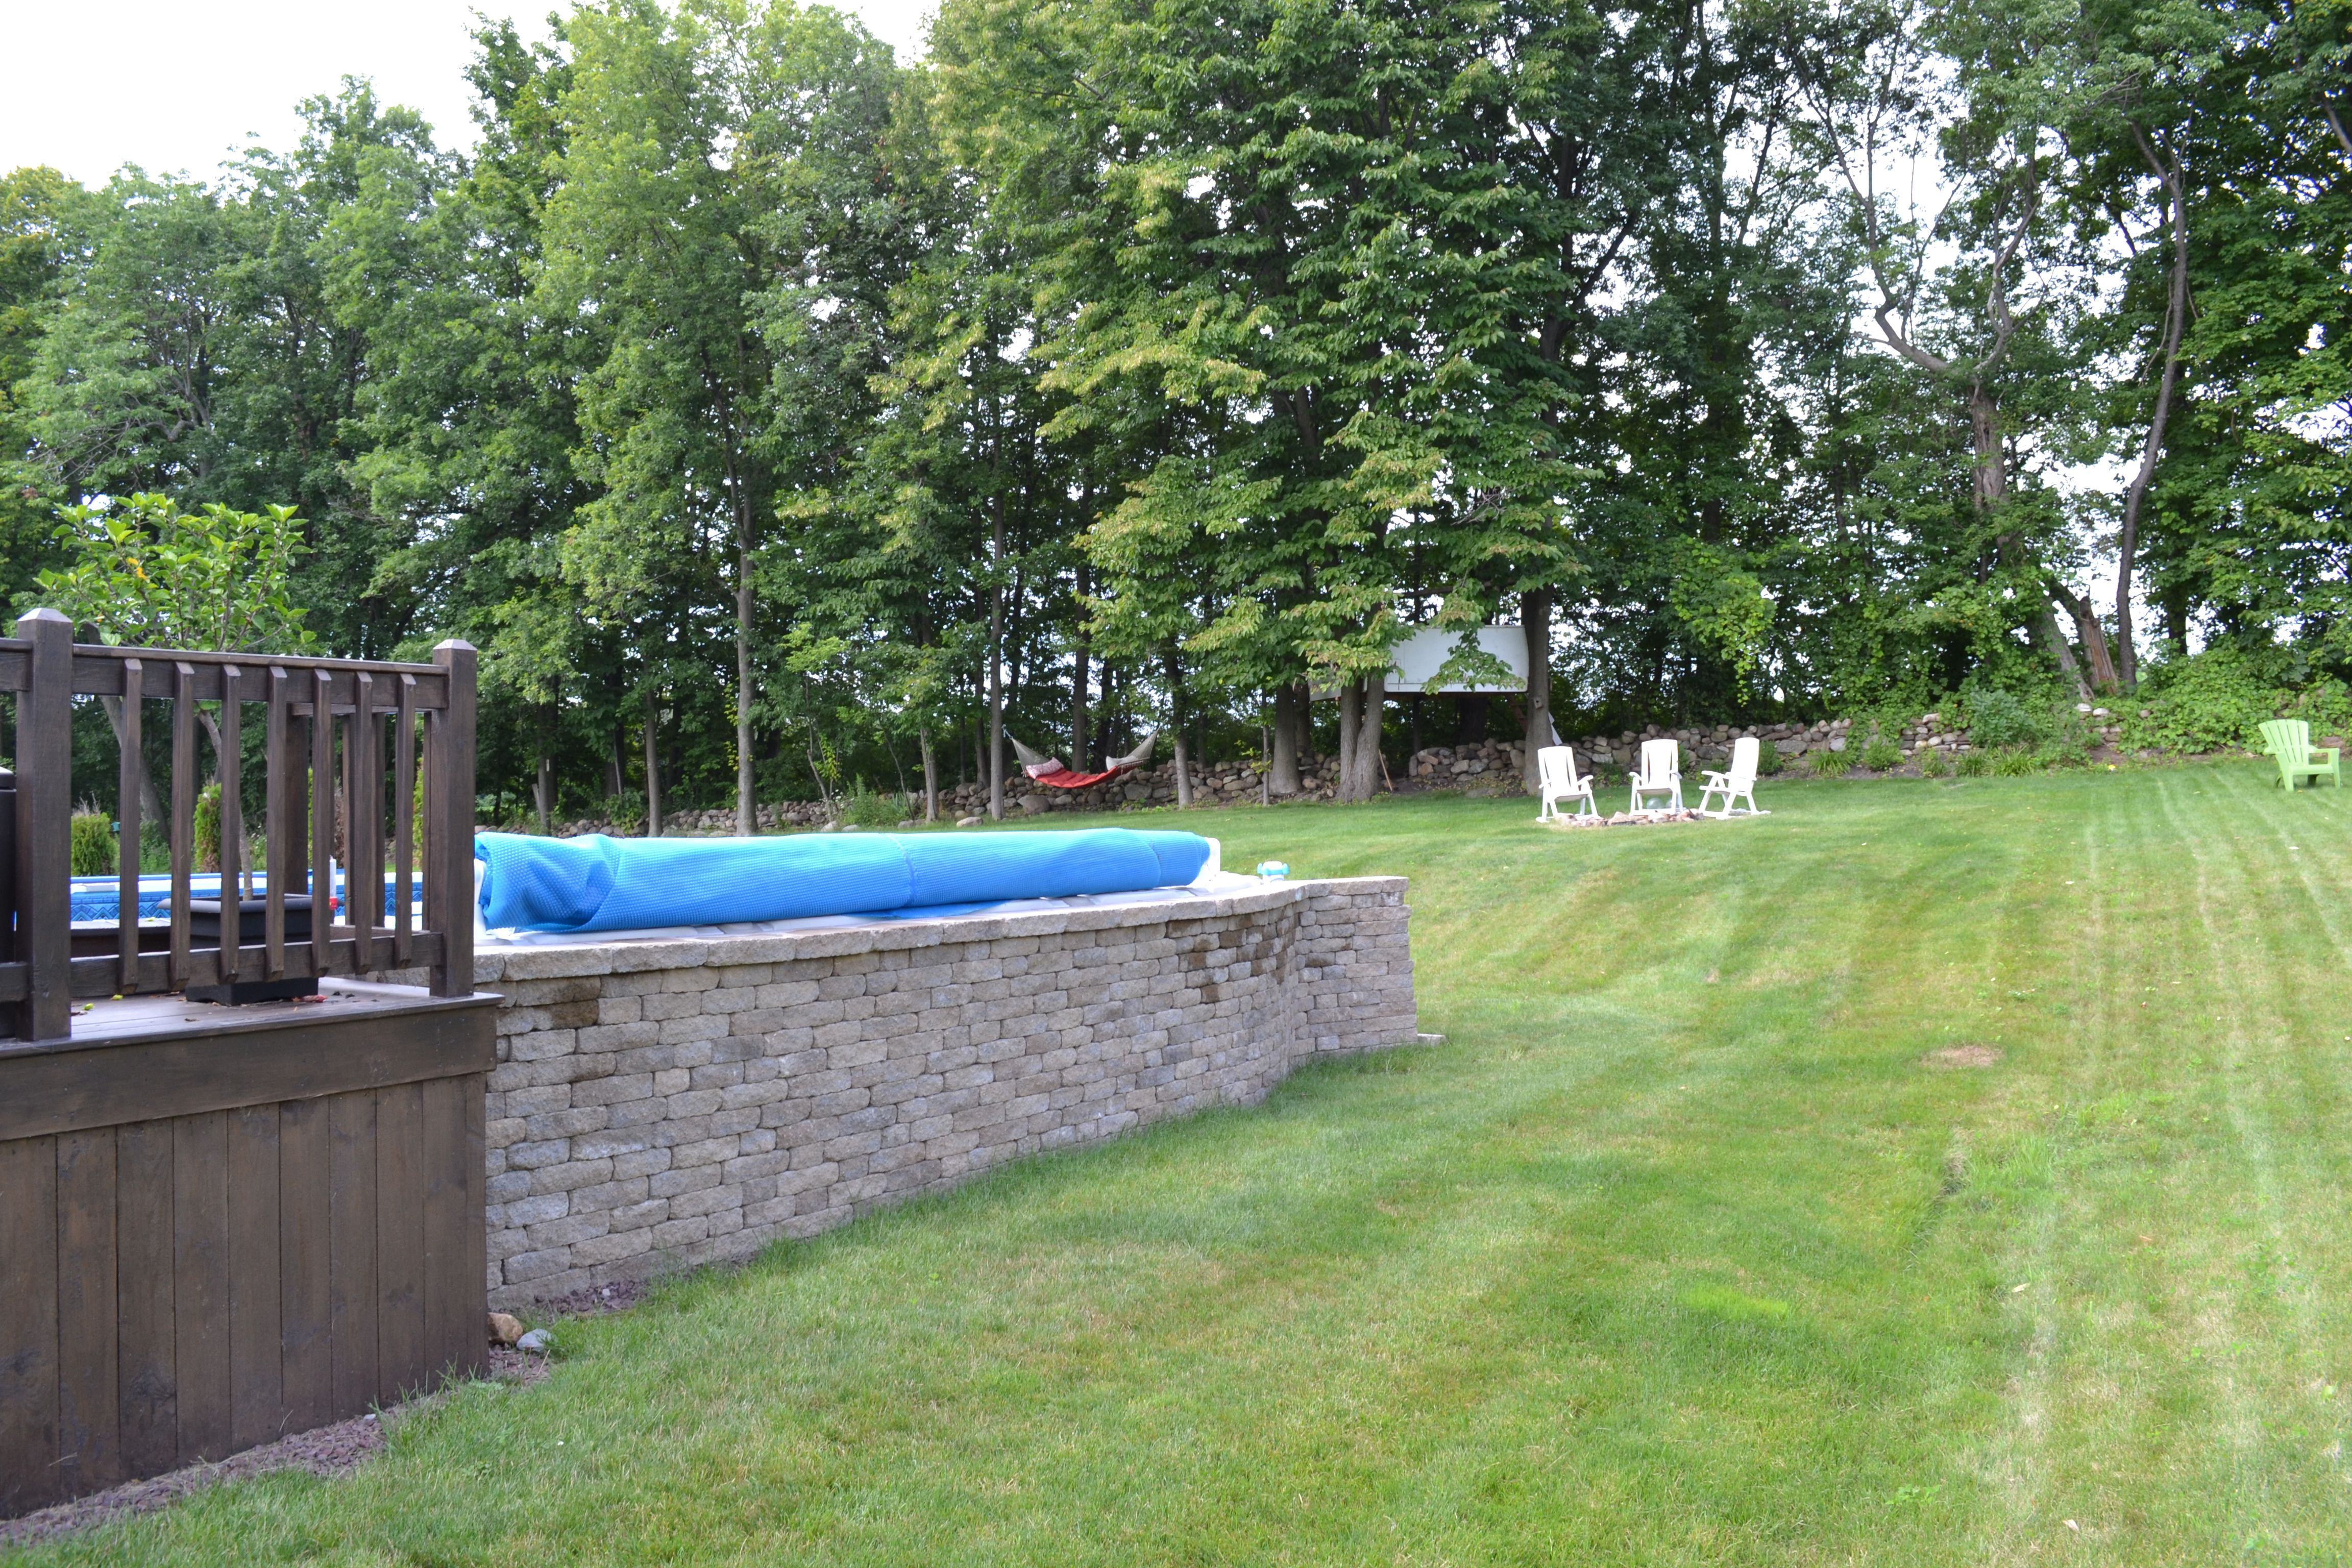 Our Oval Above Ground Pool With A Stone Wall My Husband Built Around It